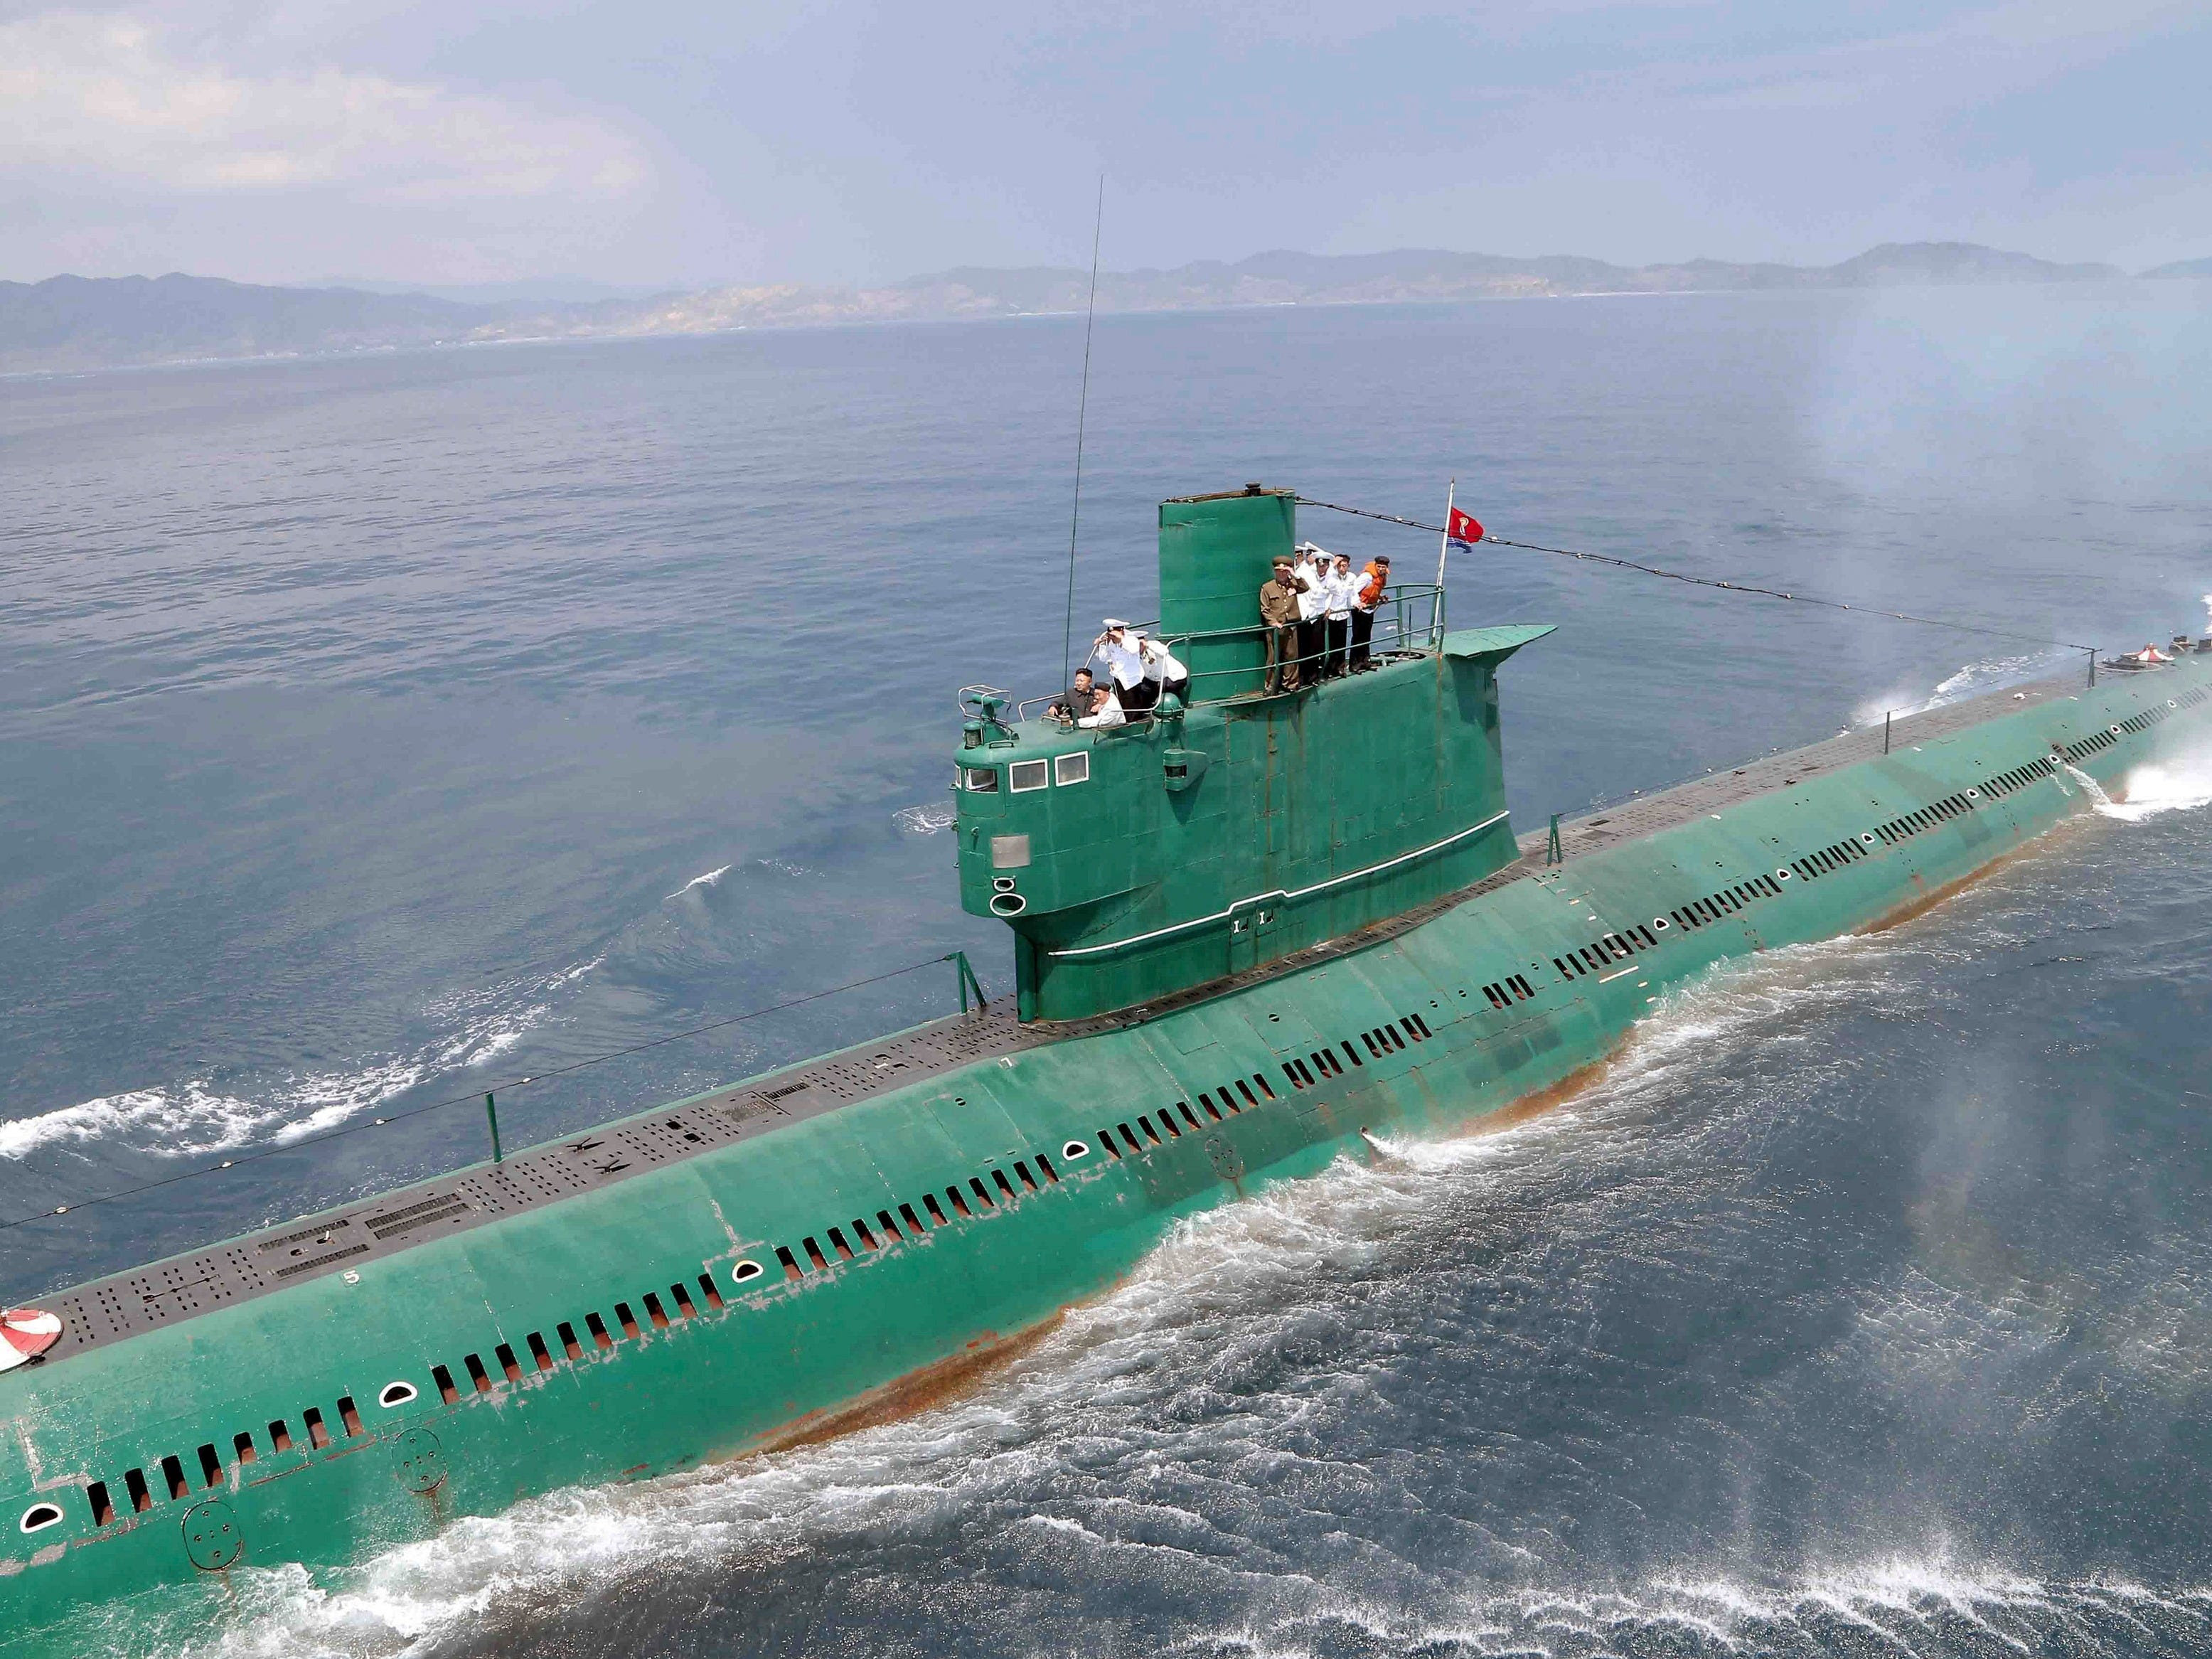 http://static4.businessinsider.com/image/55e44dfebd86ef1f008b6e89/heres-why-north-koreas-decrepit-submarine-force-still-freaks-out-the-south.jpg